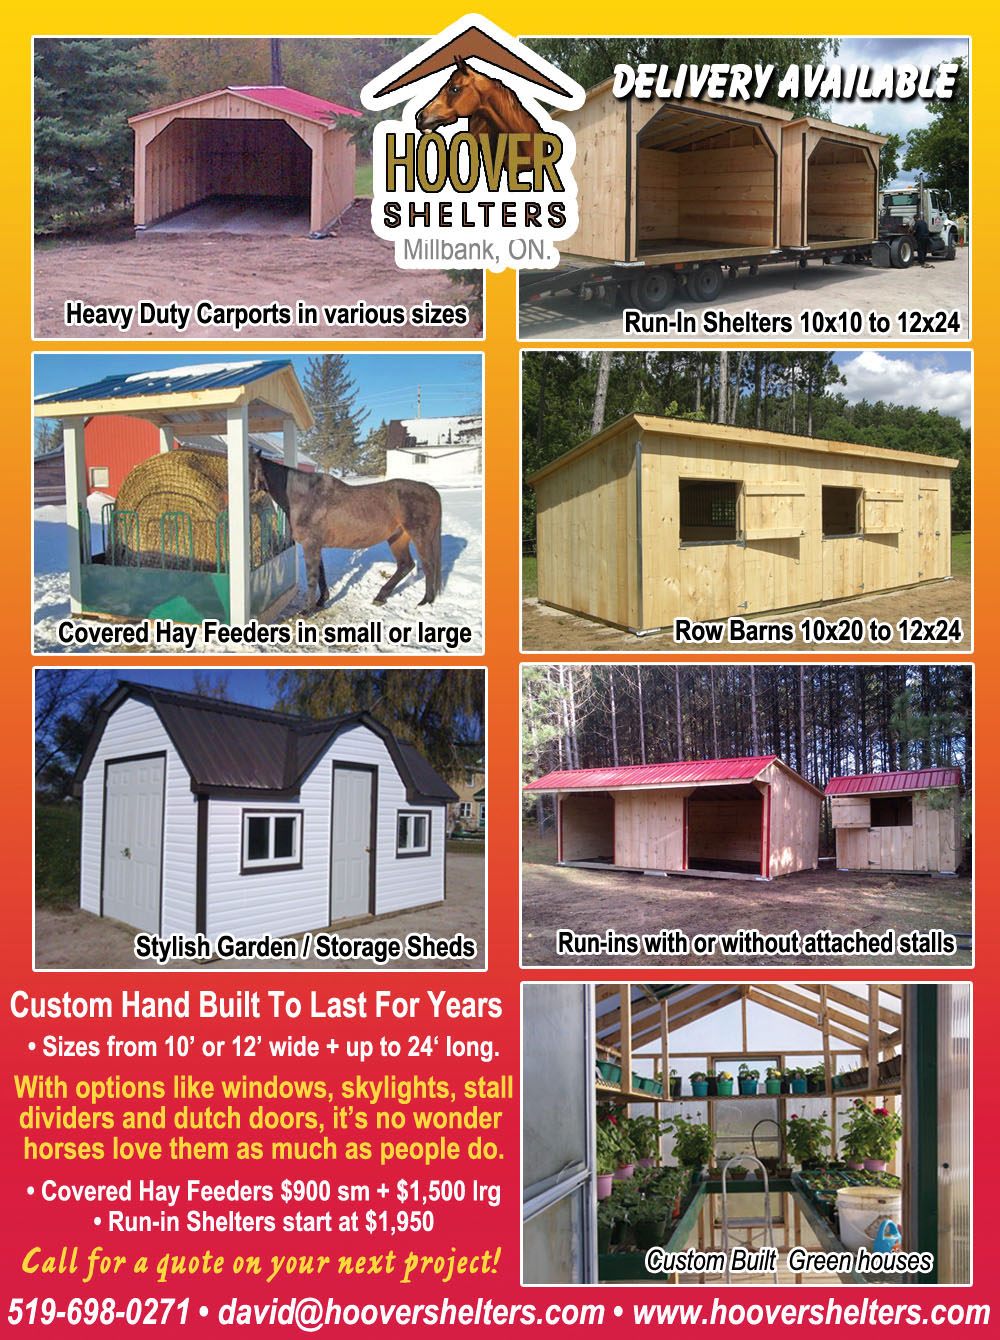 Hoover Shelters